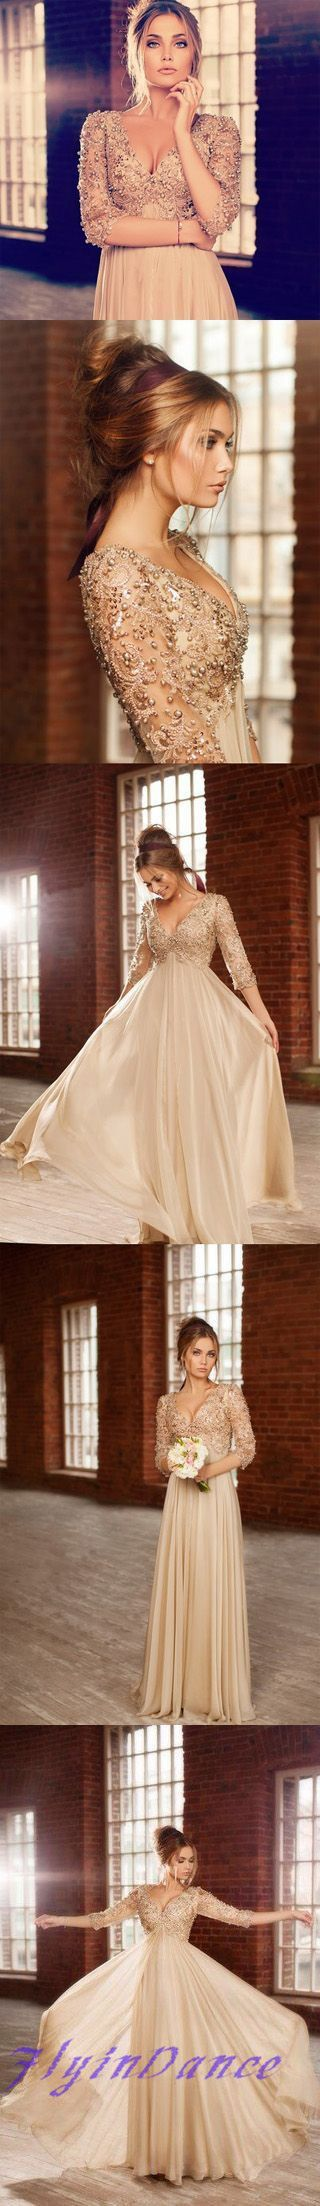 Chiffon Prom Dresses,Champagne Prom Gowns,Beaded Evening Dress,Crystals Prom Gown With Long Sleeves